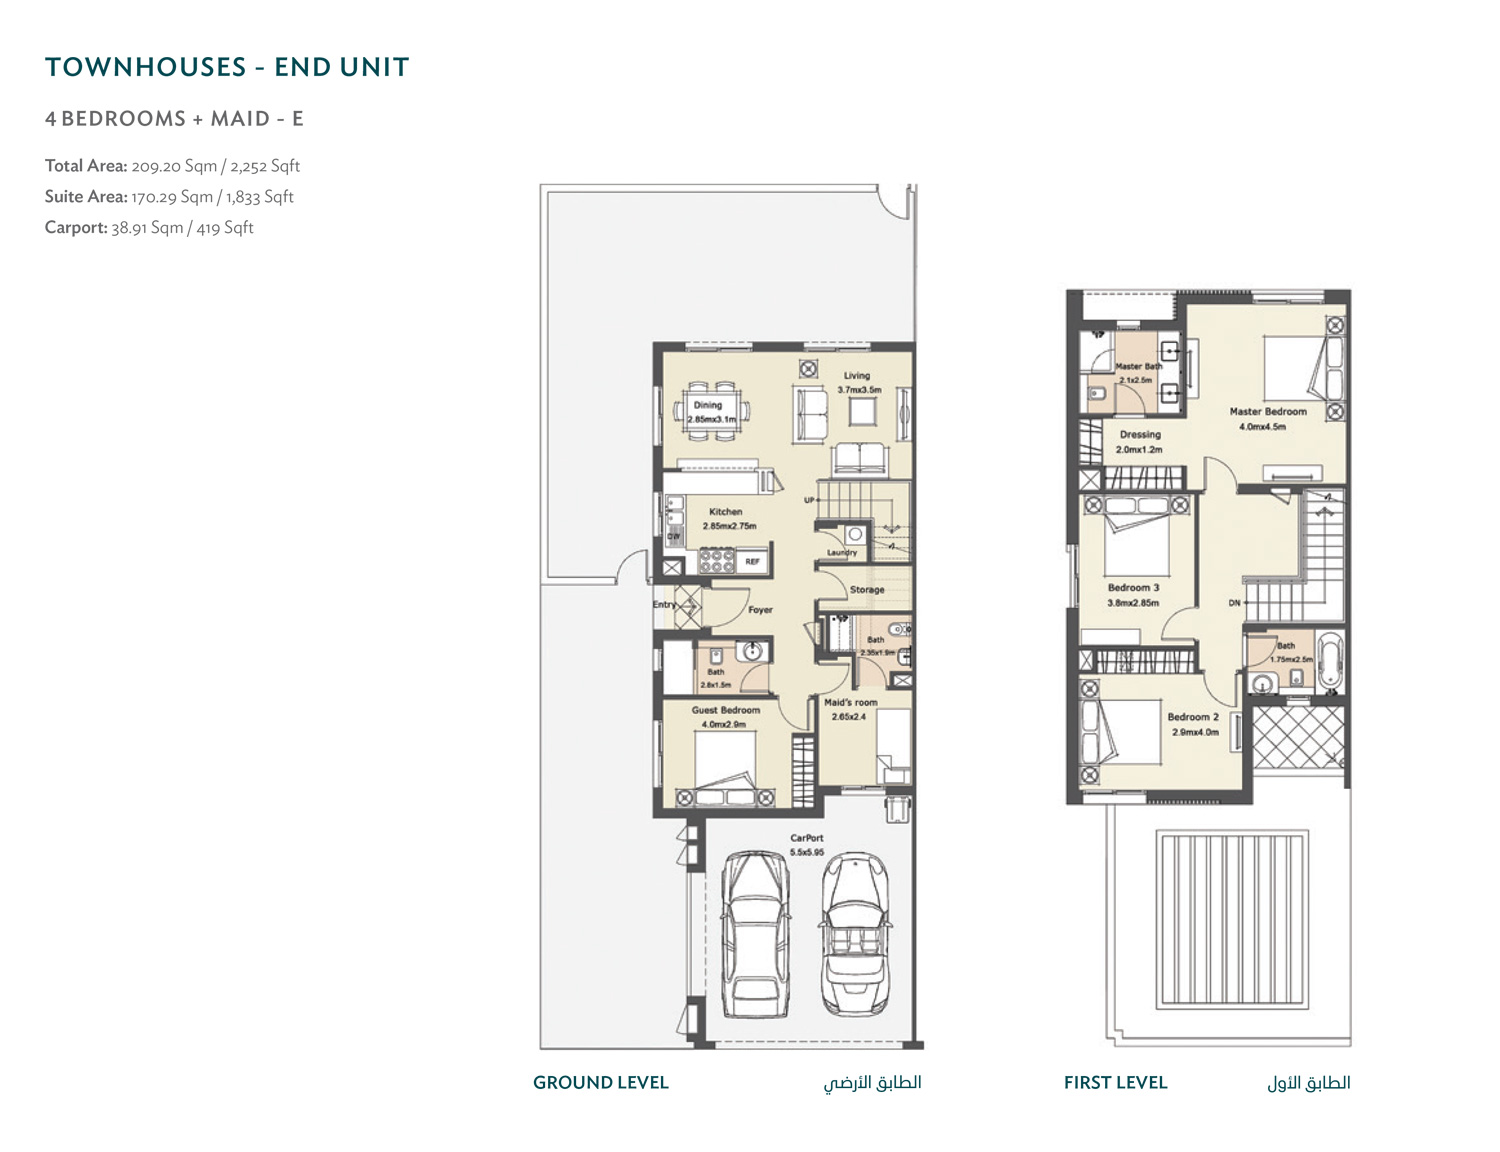 Phase 4 - 4 Bedroom - Maid - E, Size 2252  sq. ft.